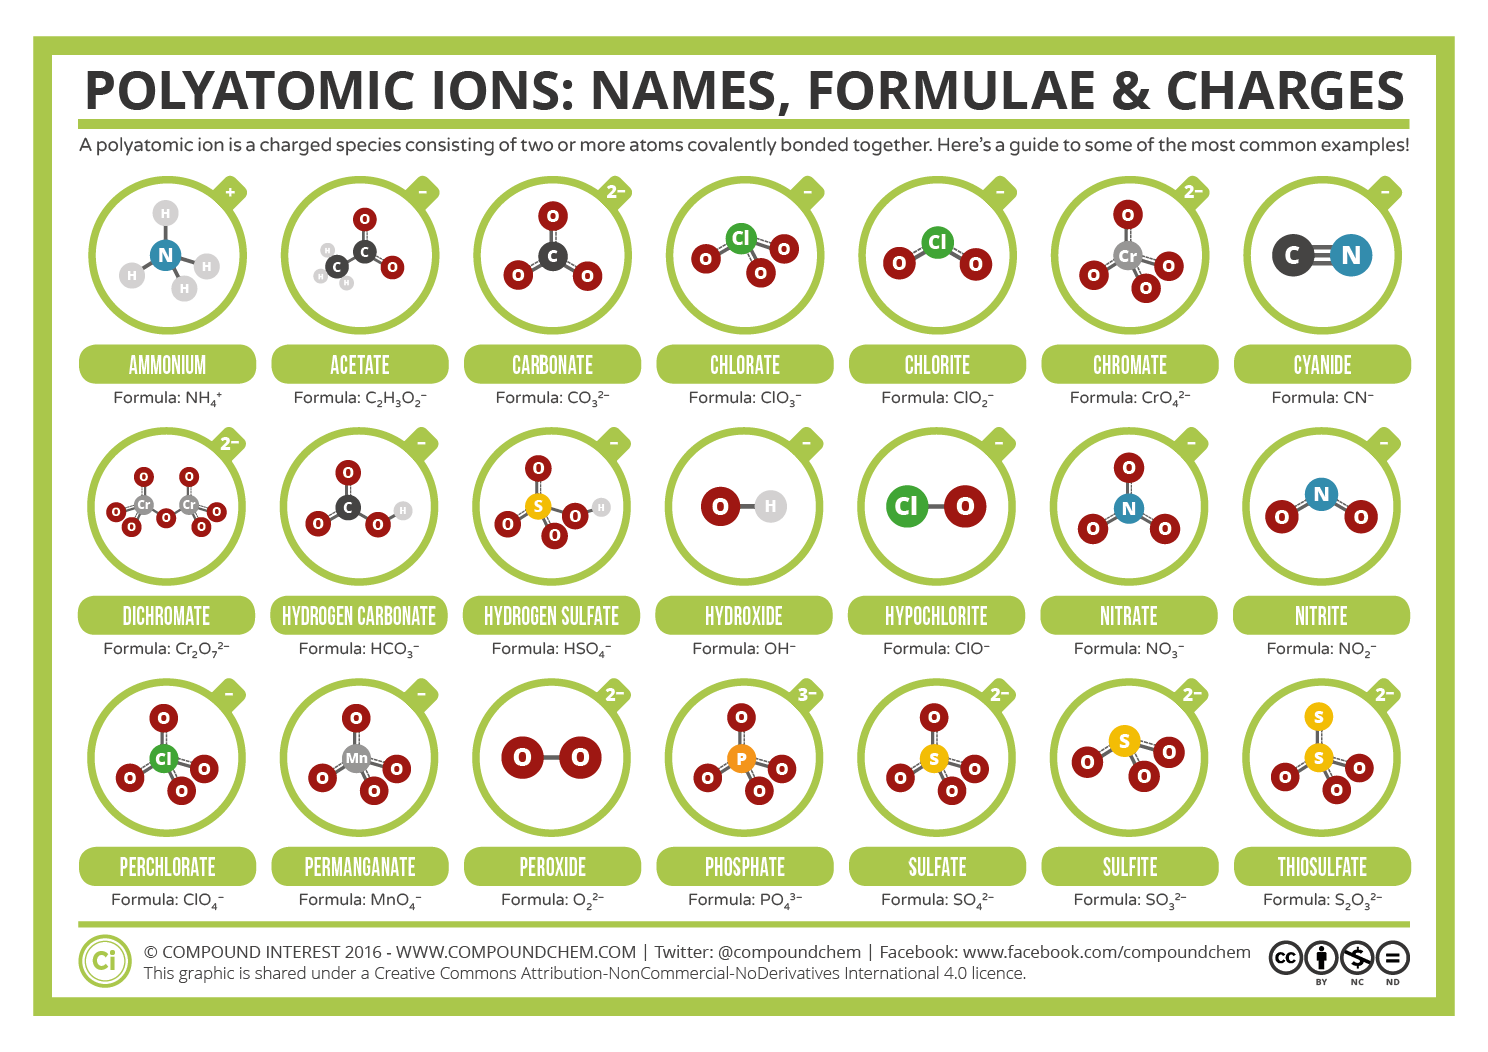 Common Polyatomic Ions: Names, Formulae, and Charges ...